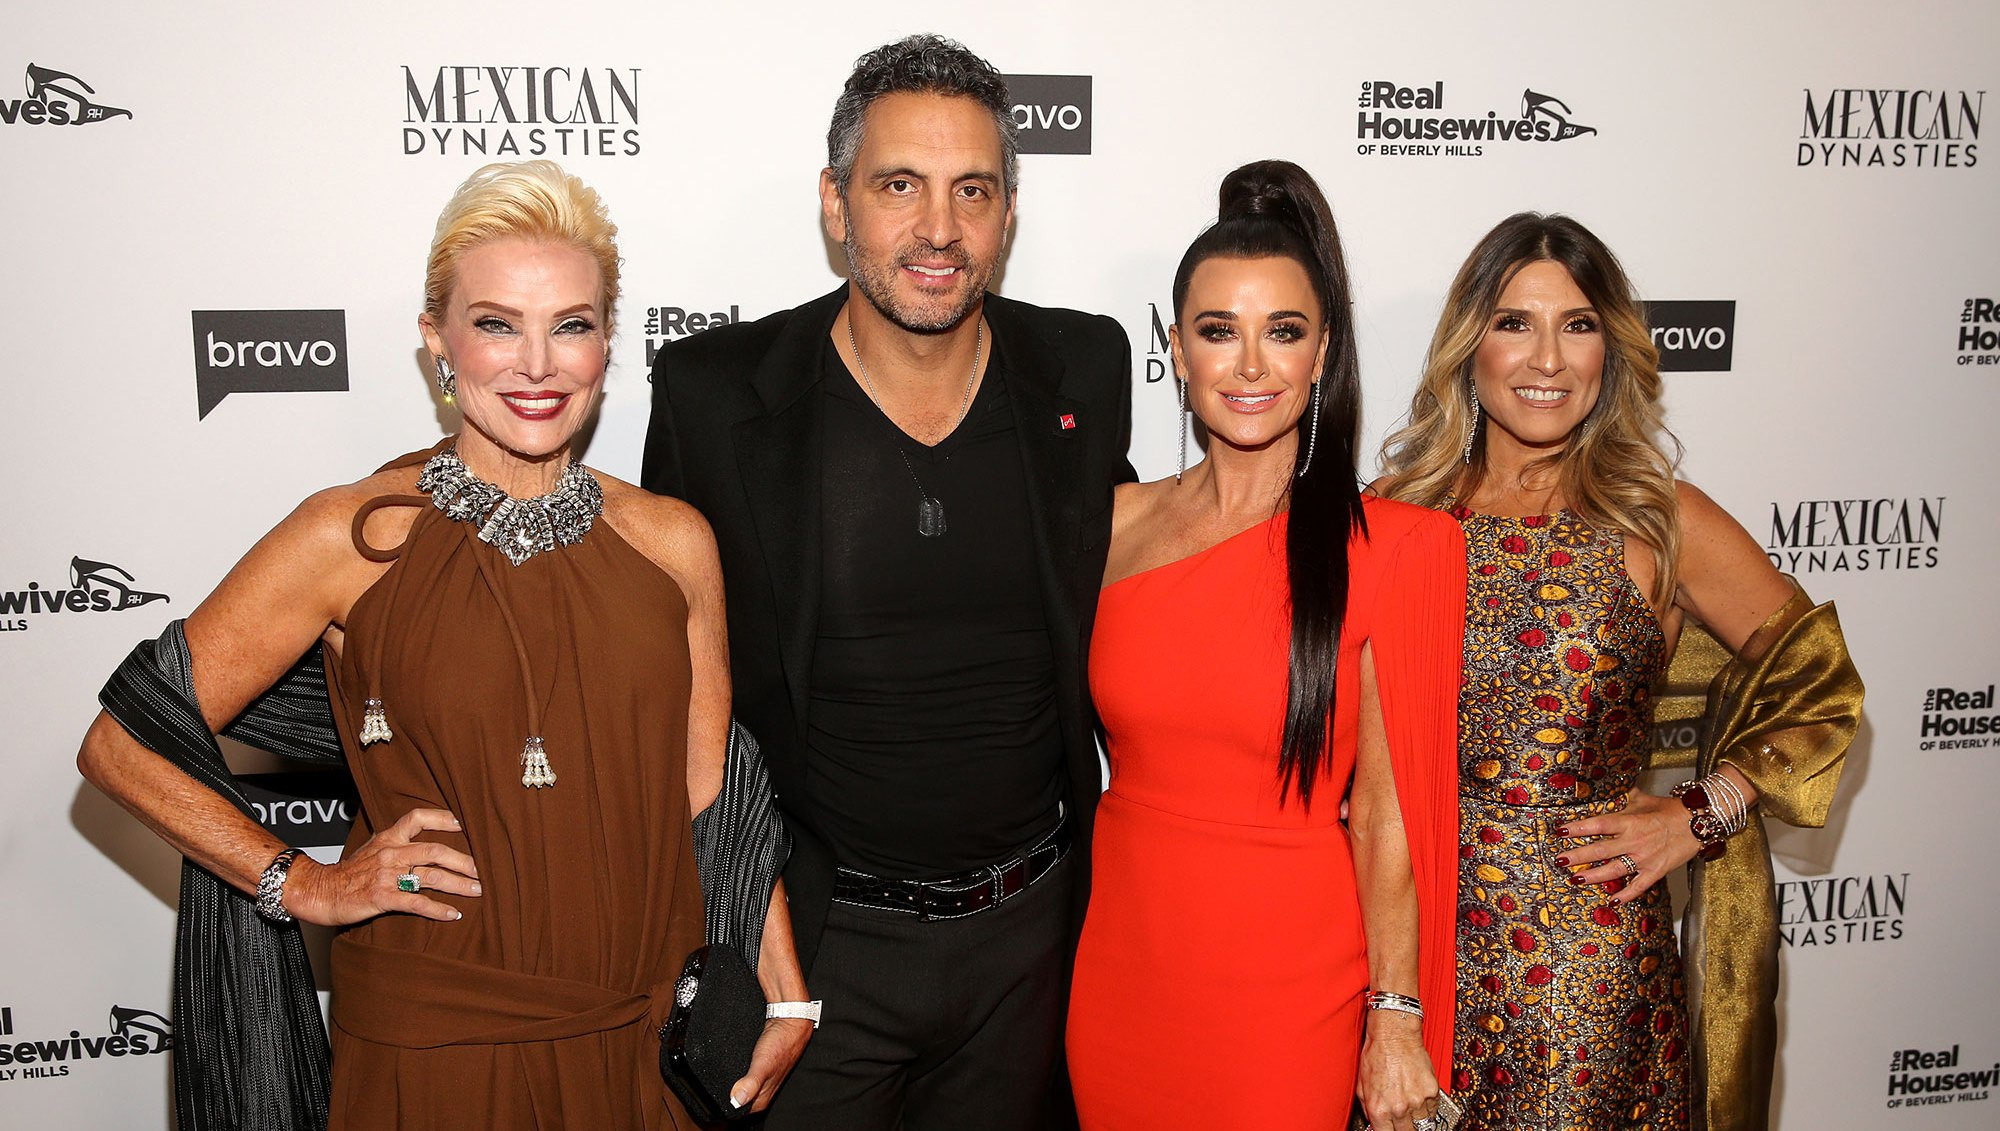 Kyle Richards Reveals Advice She Gave Cousin and 'Mexican Dynasties' Star Doris Bessudo